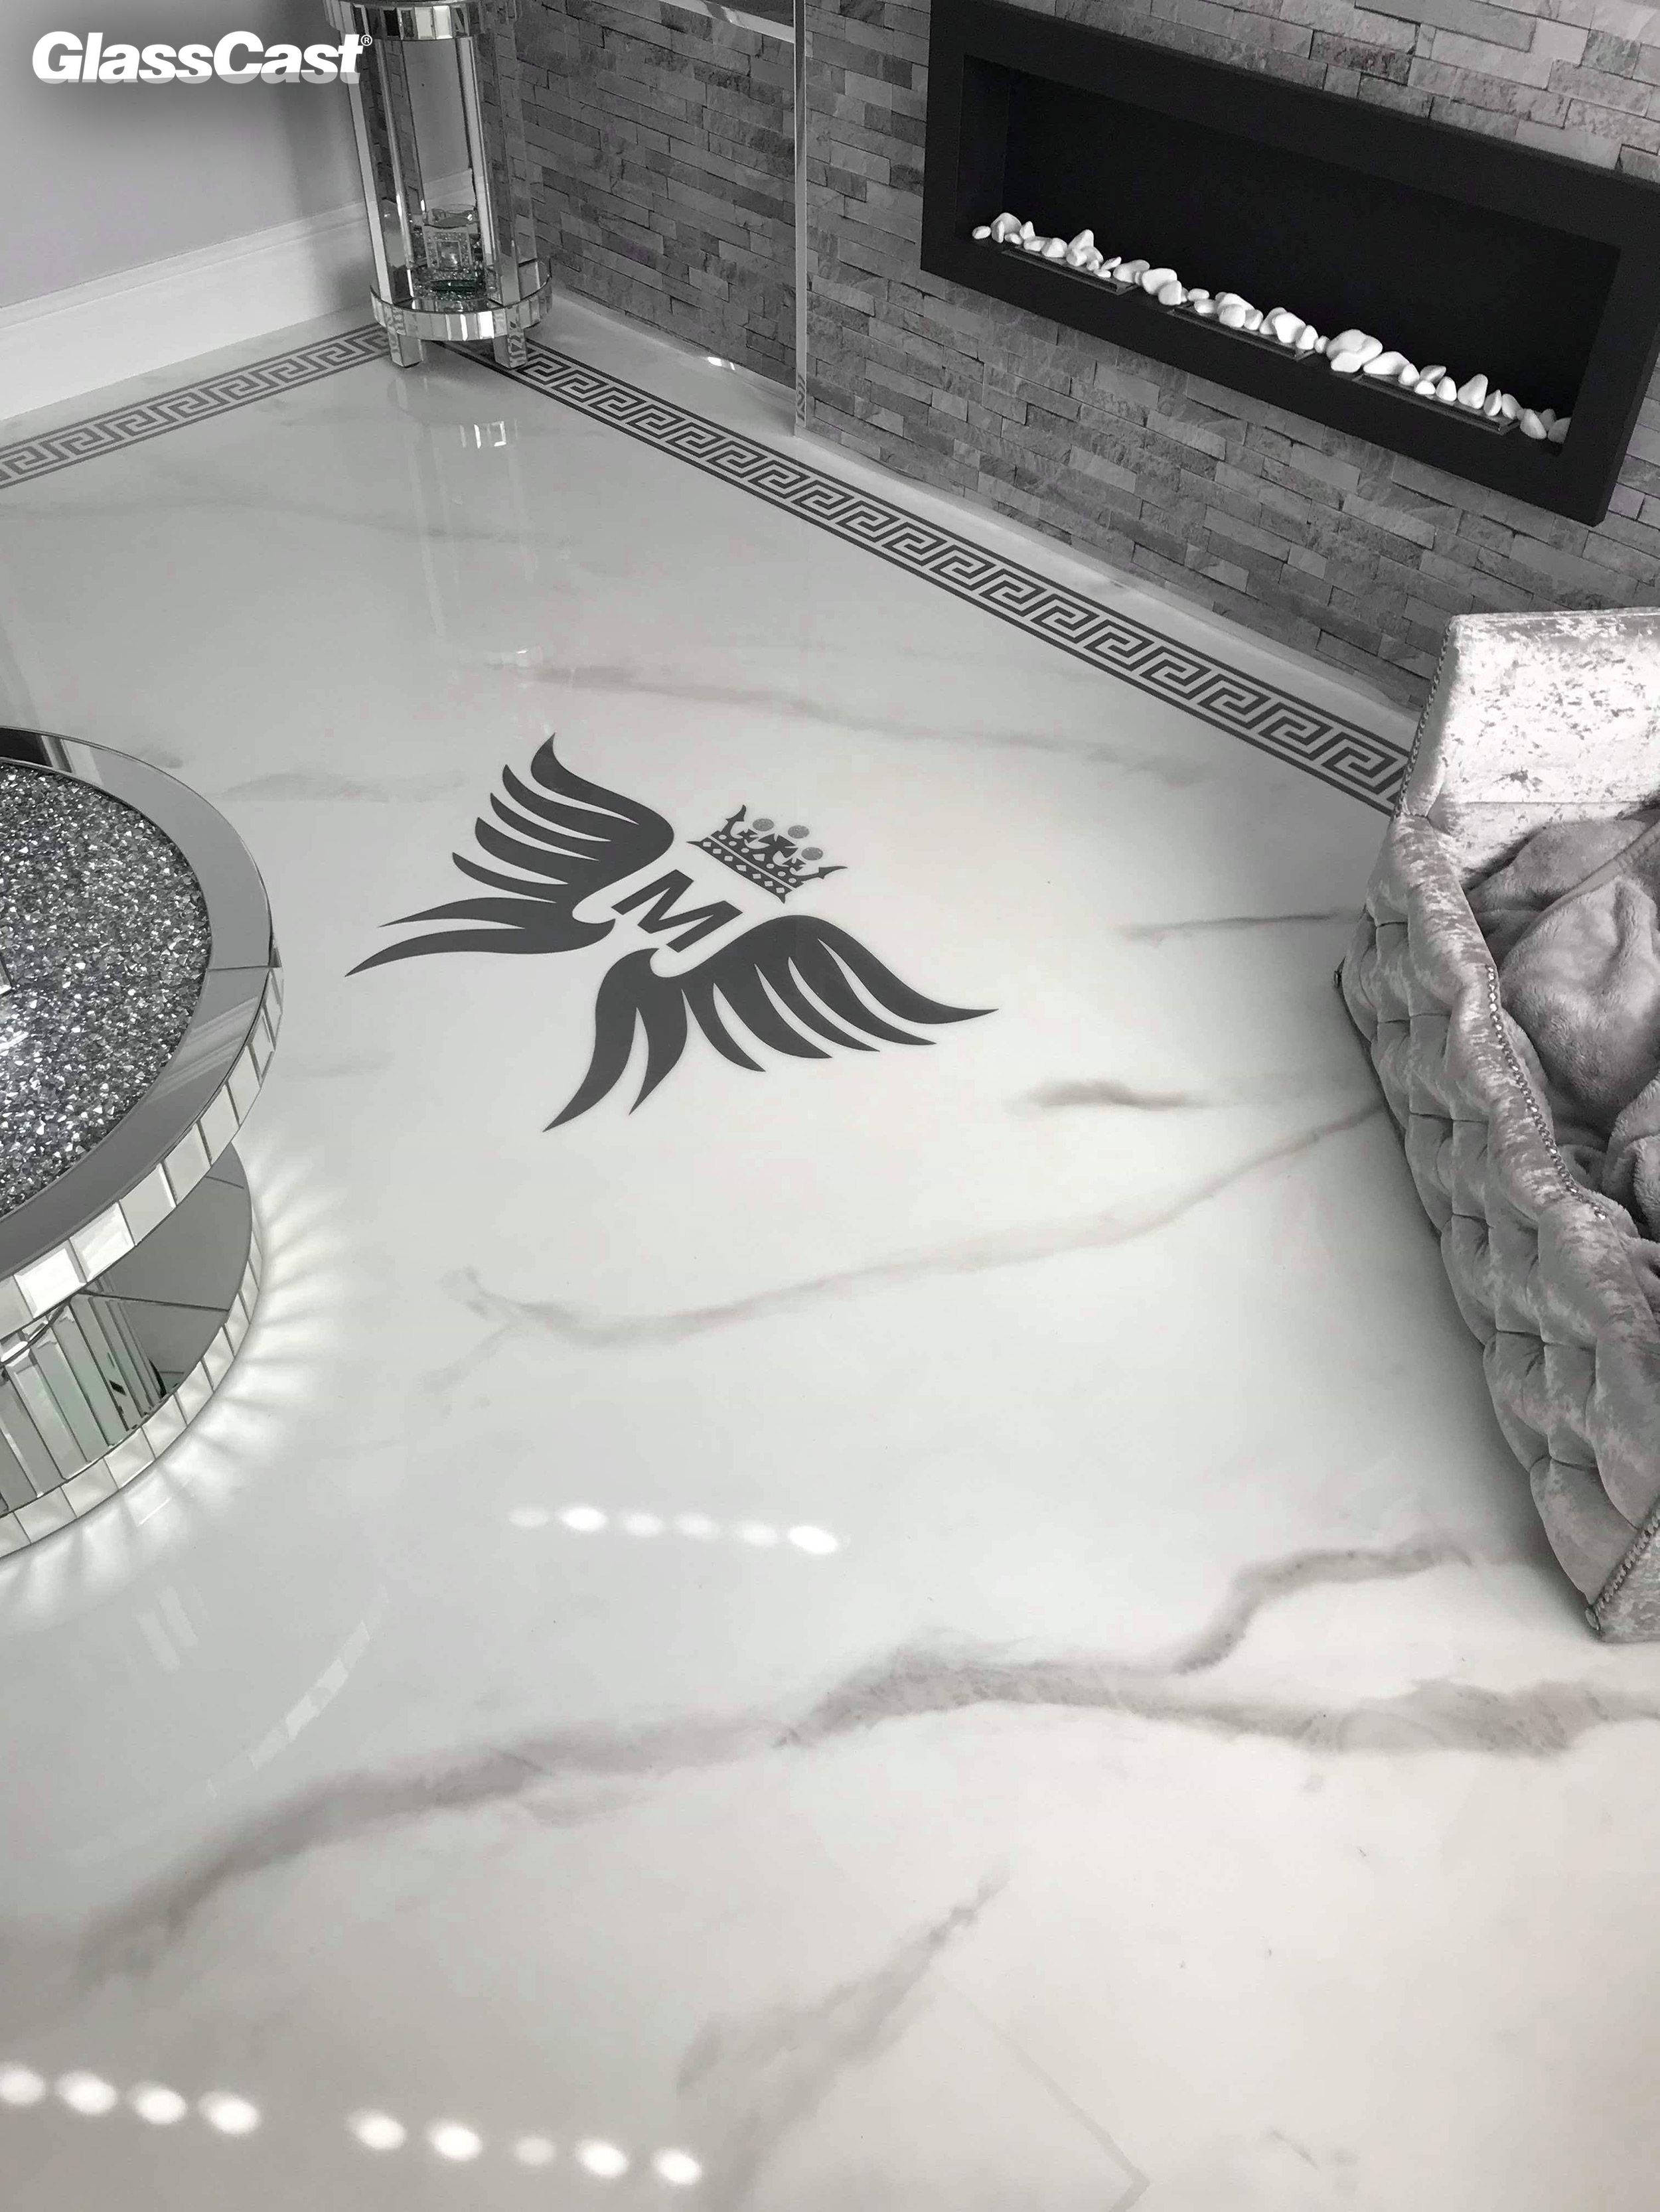 Marble Effect White And Metallic Resin Floor Glasscast